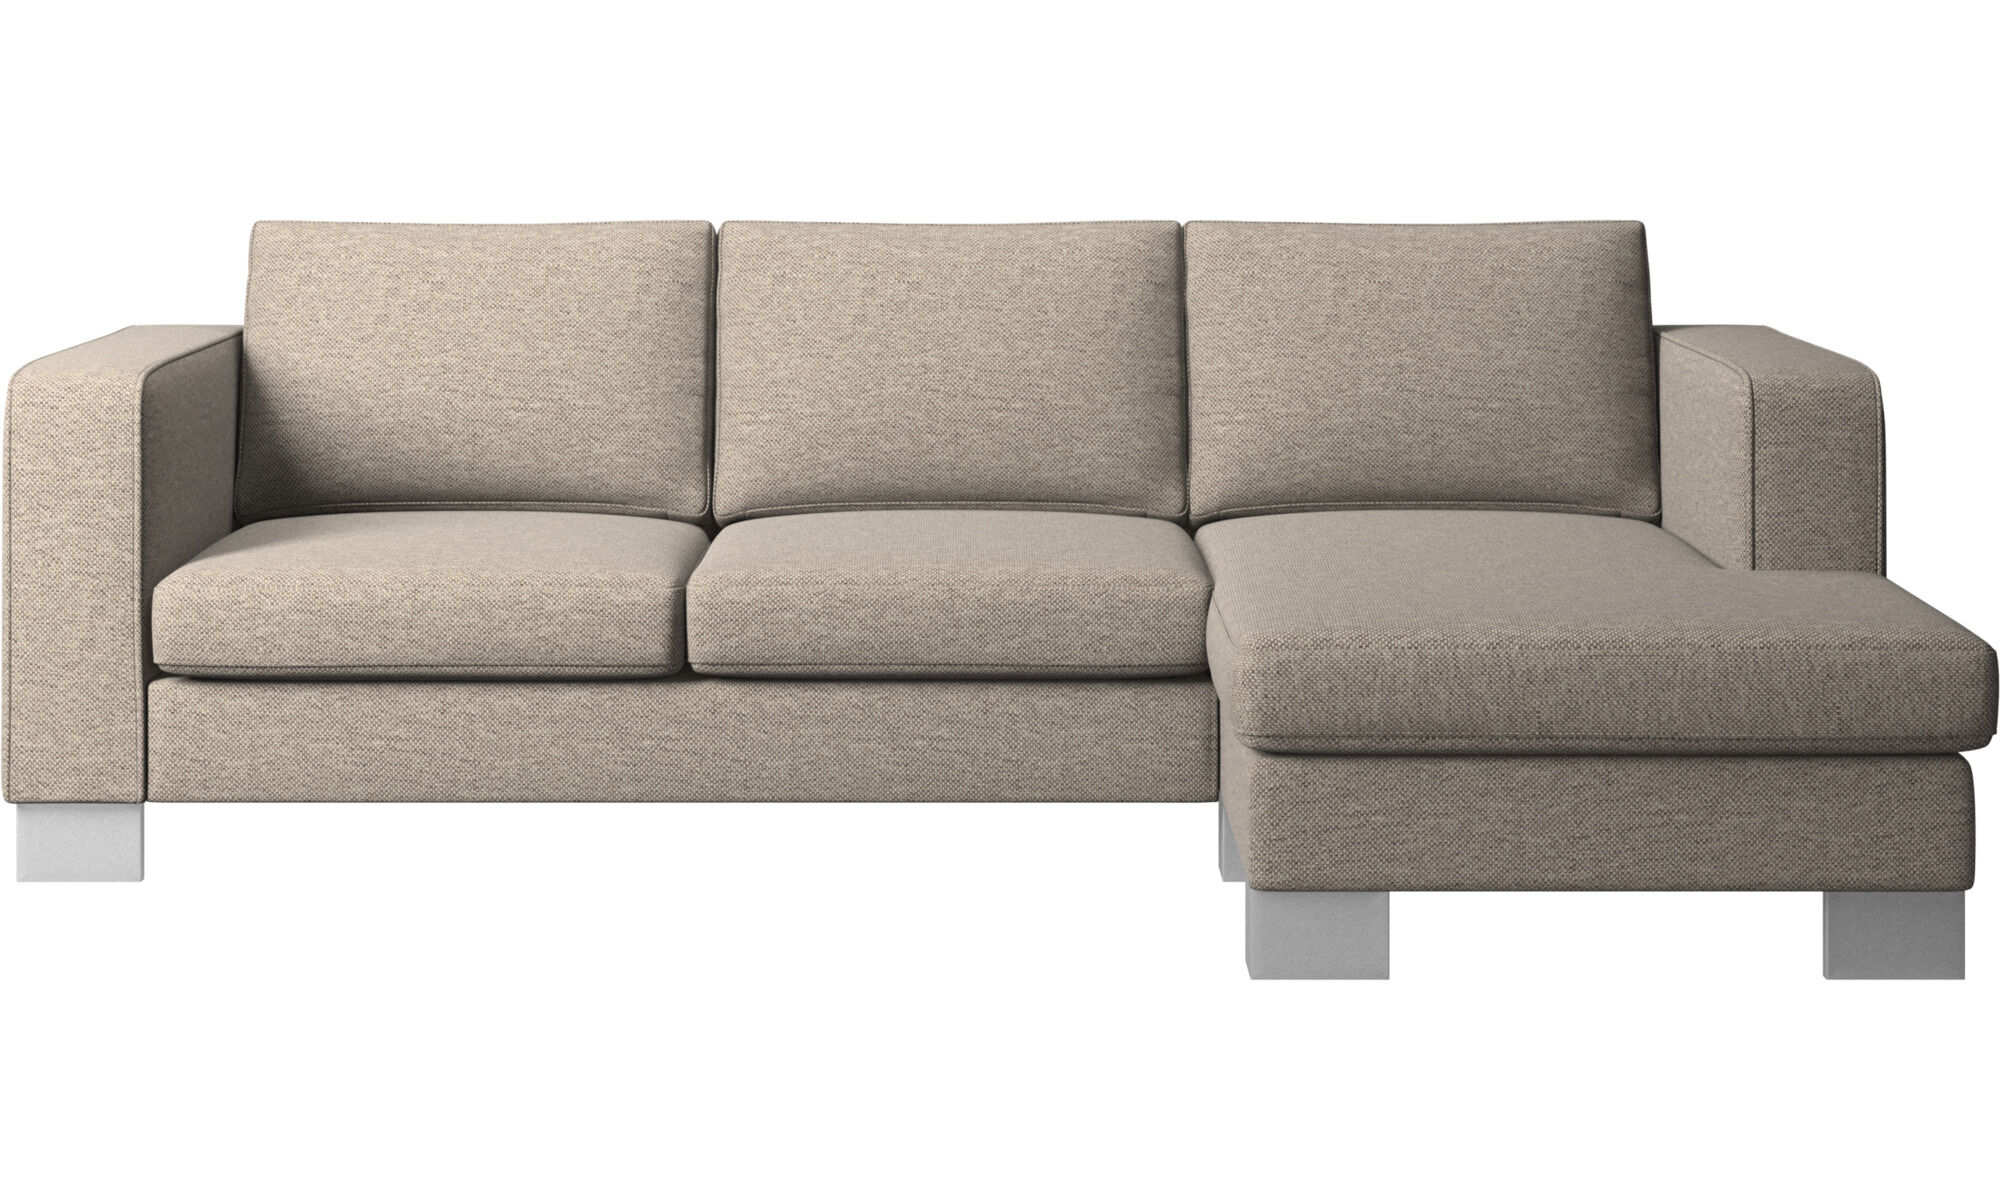 Chaise Lounge Sofas   Indivi 2 Sofa With Resting Unit   Beige   Fabric ...